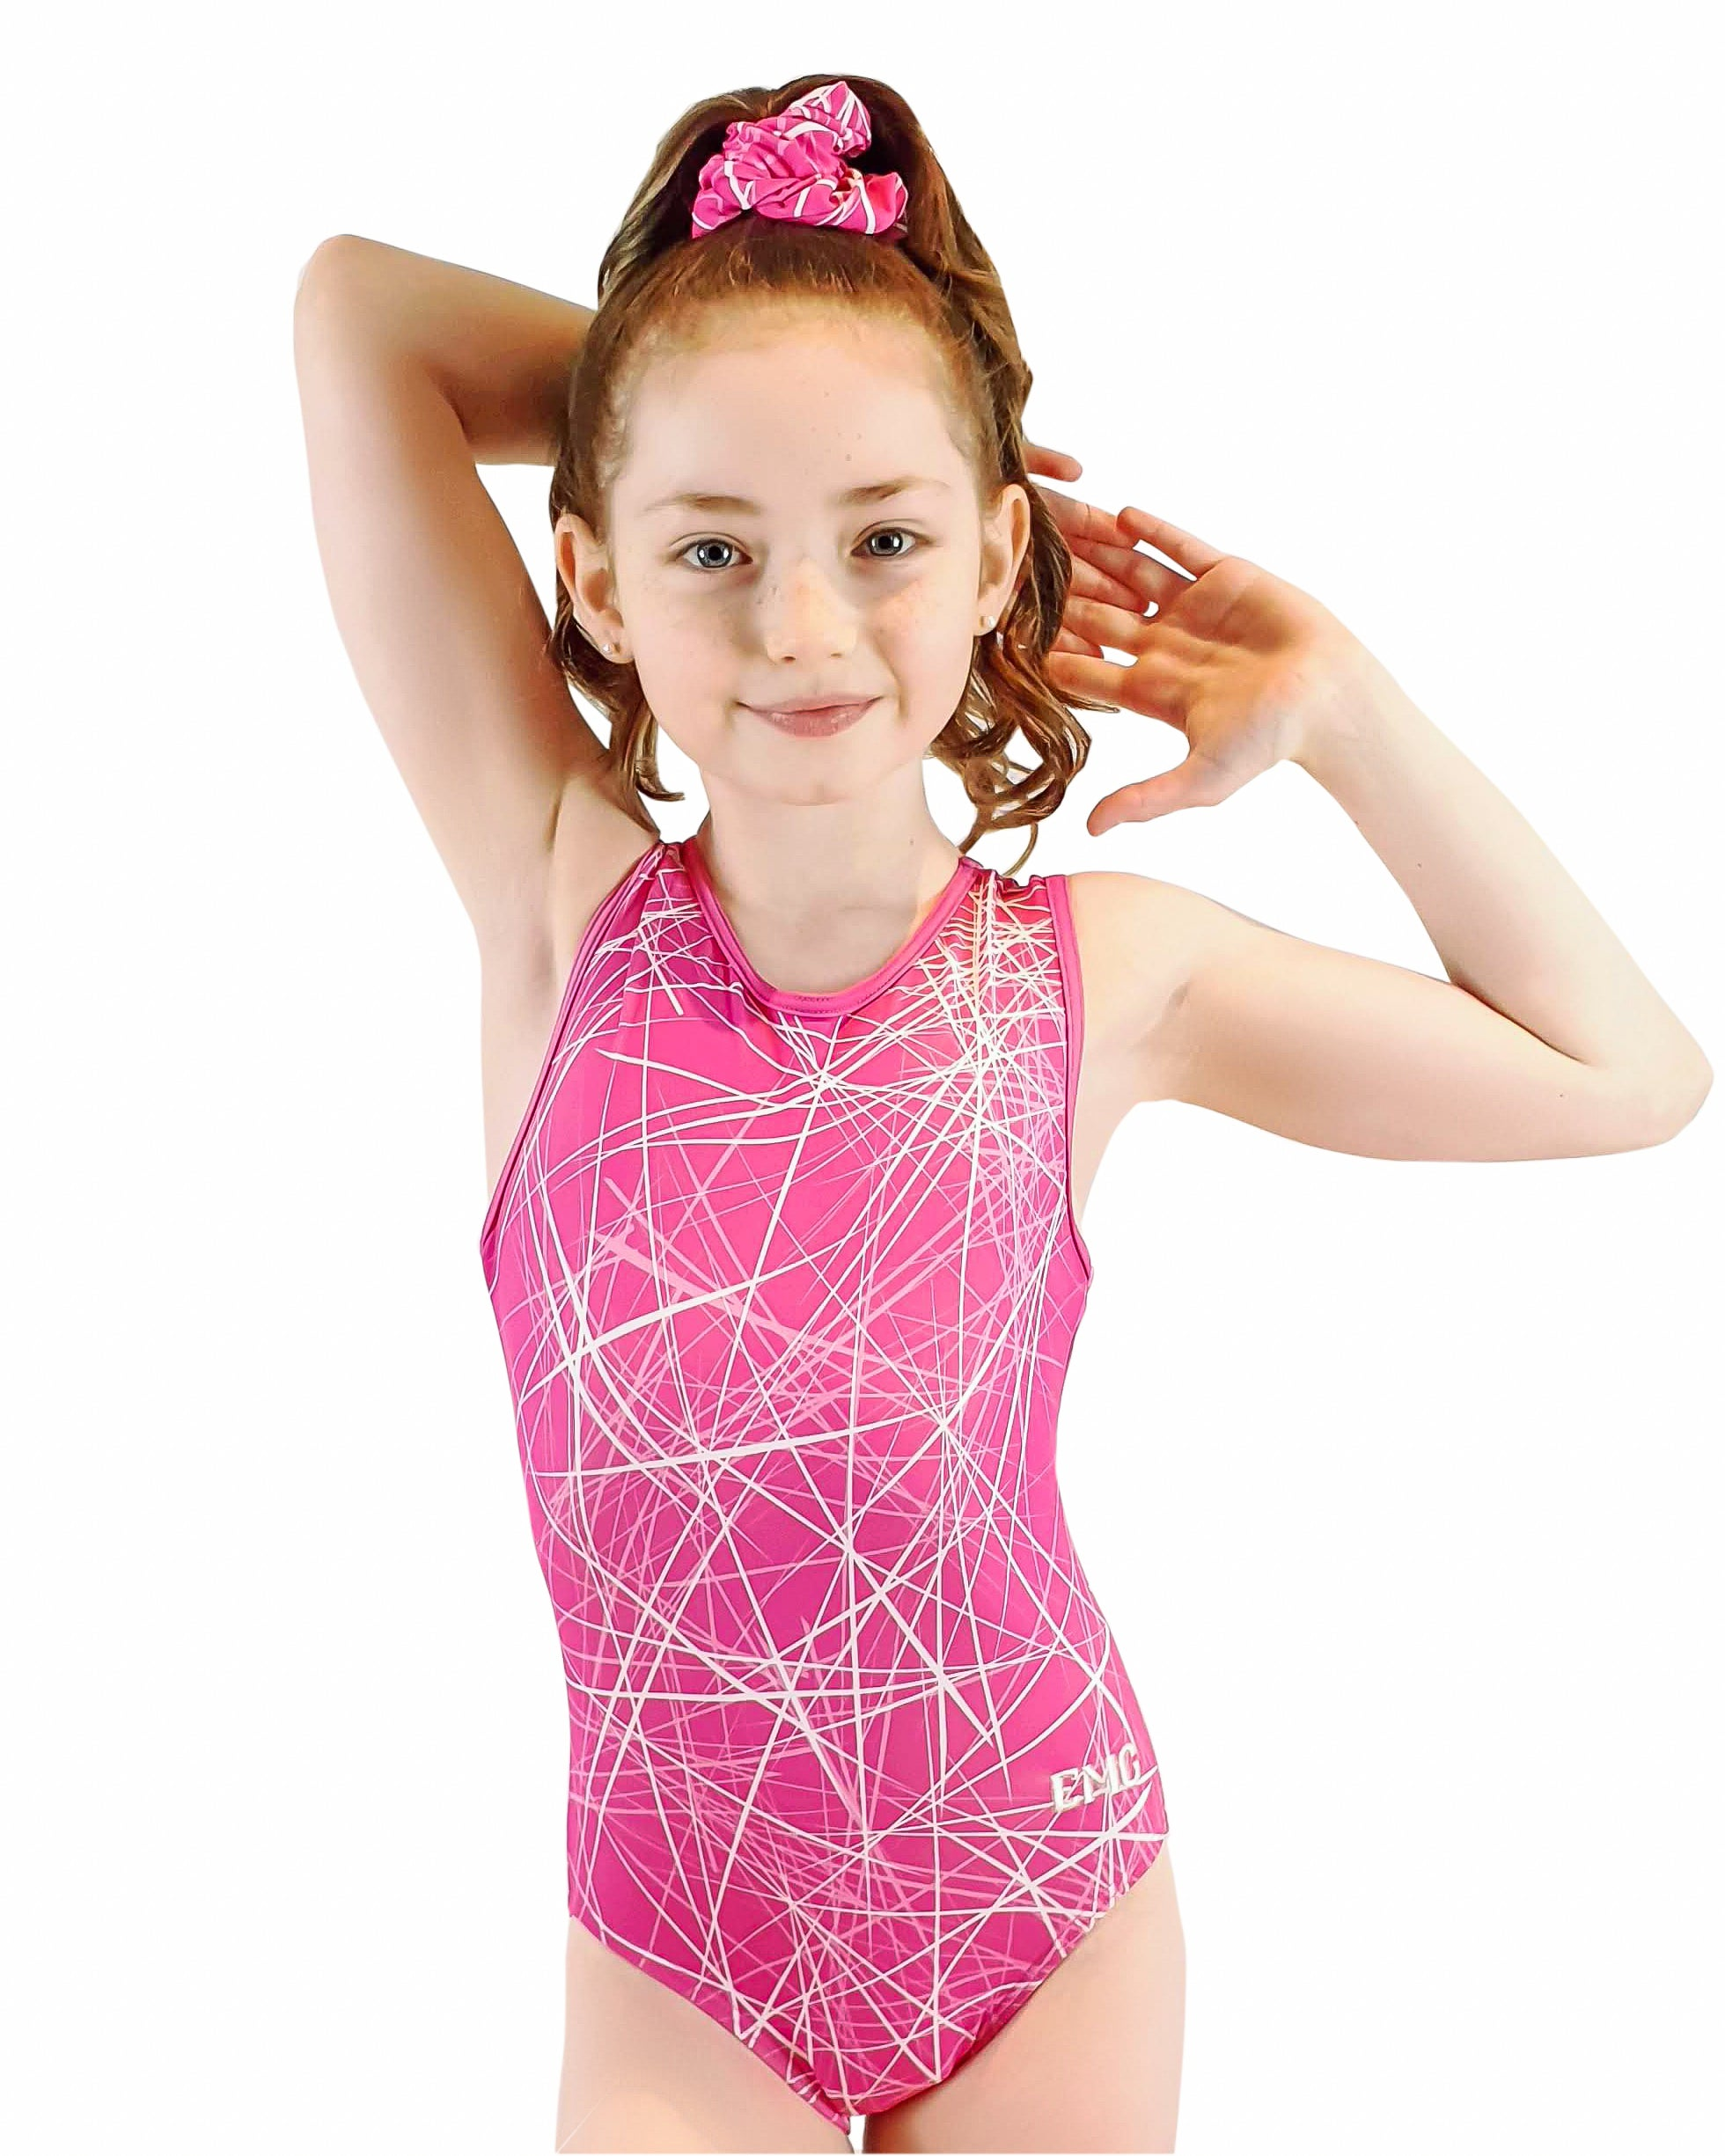 FRACTURED PINK Girls Gymnastics Leotard | Equip My Gym A